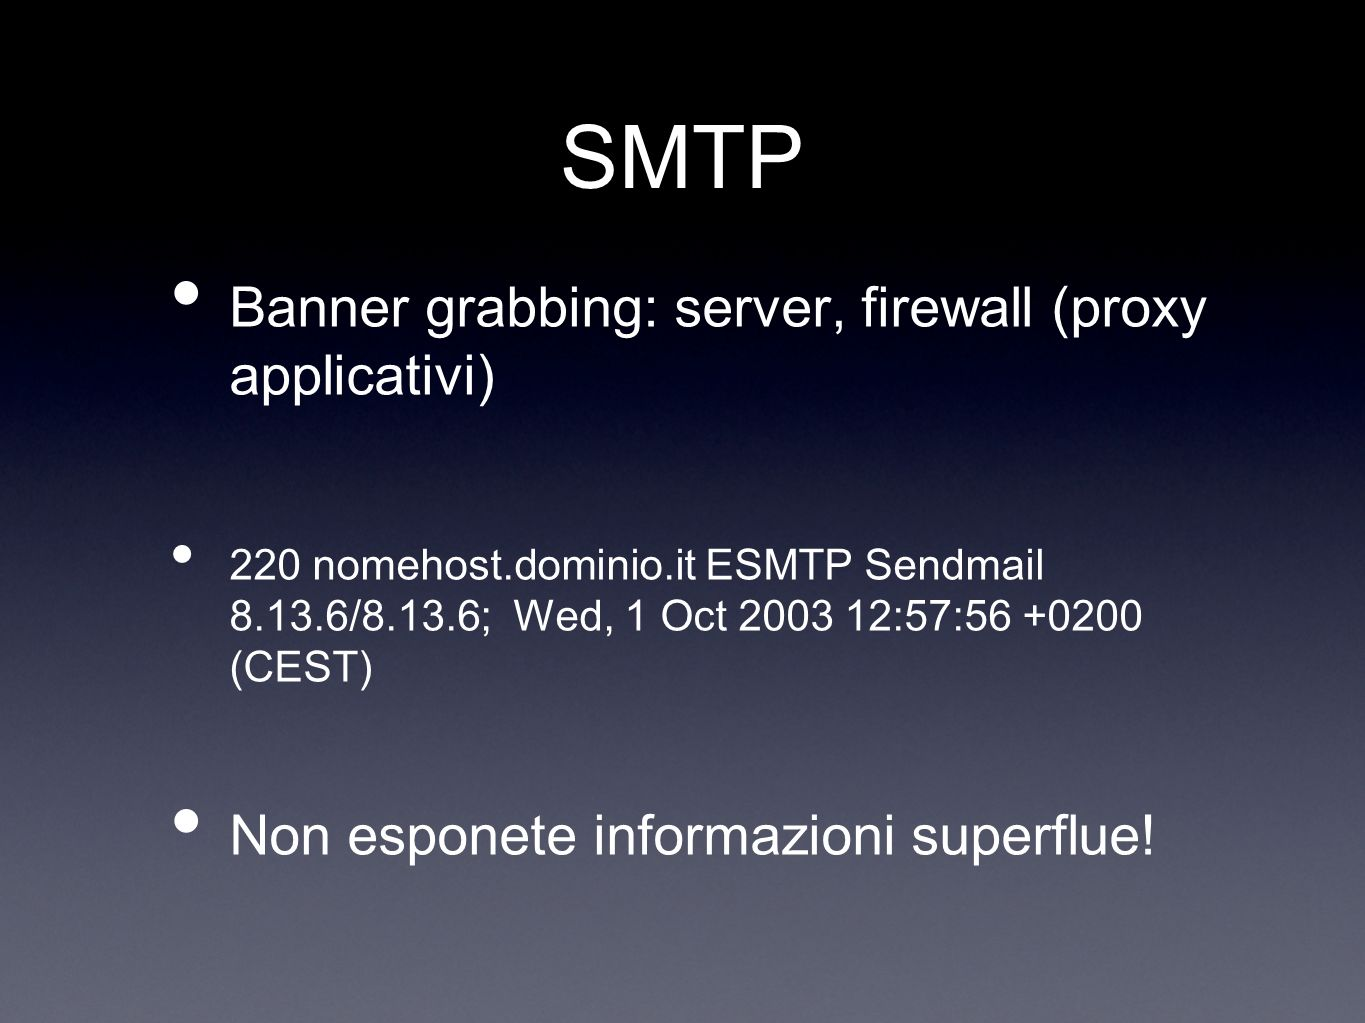 SMTP Banner grabbing: server, firewall (proxy applicativi)